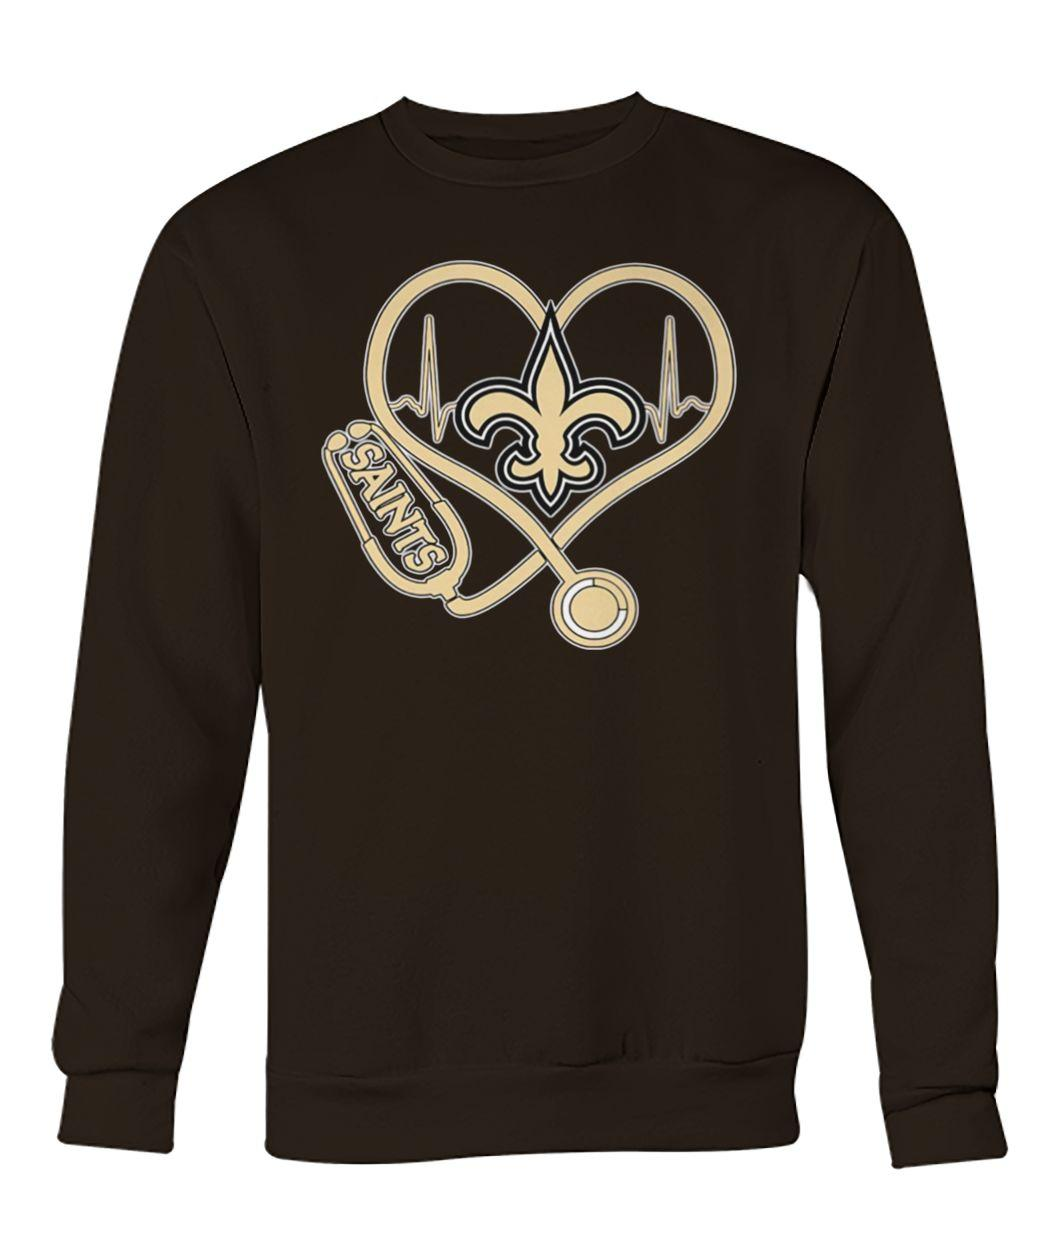 Stethoscope new orleans saints nfl sweatshirt